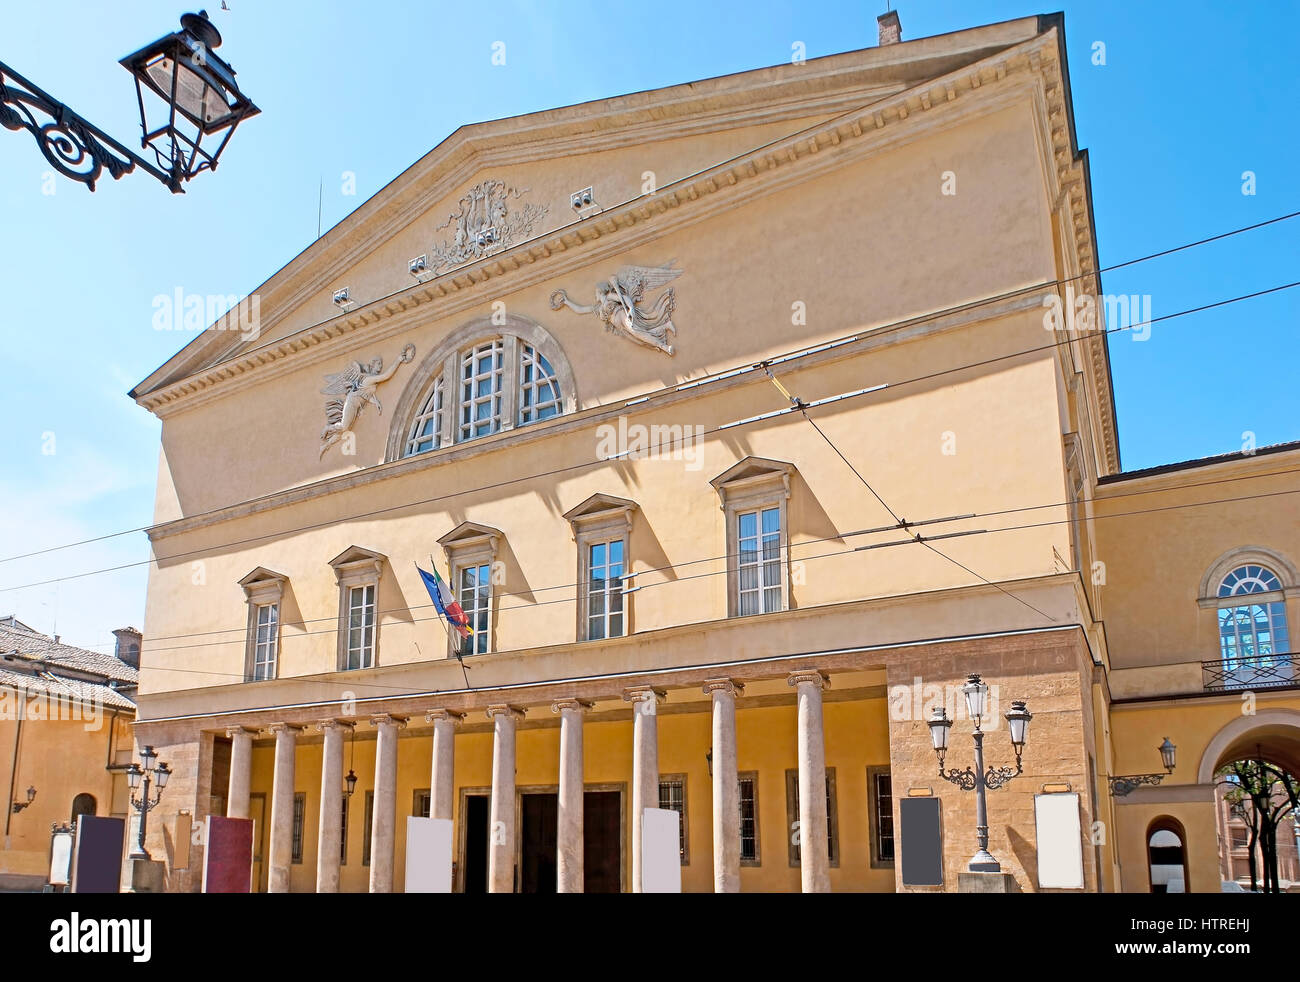 The facade of Parma Opera House, named Teatro Regio or New Ducal Theater, faces the Garibaldi Street, Italy. - Stock Image